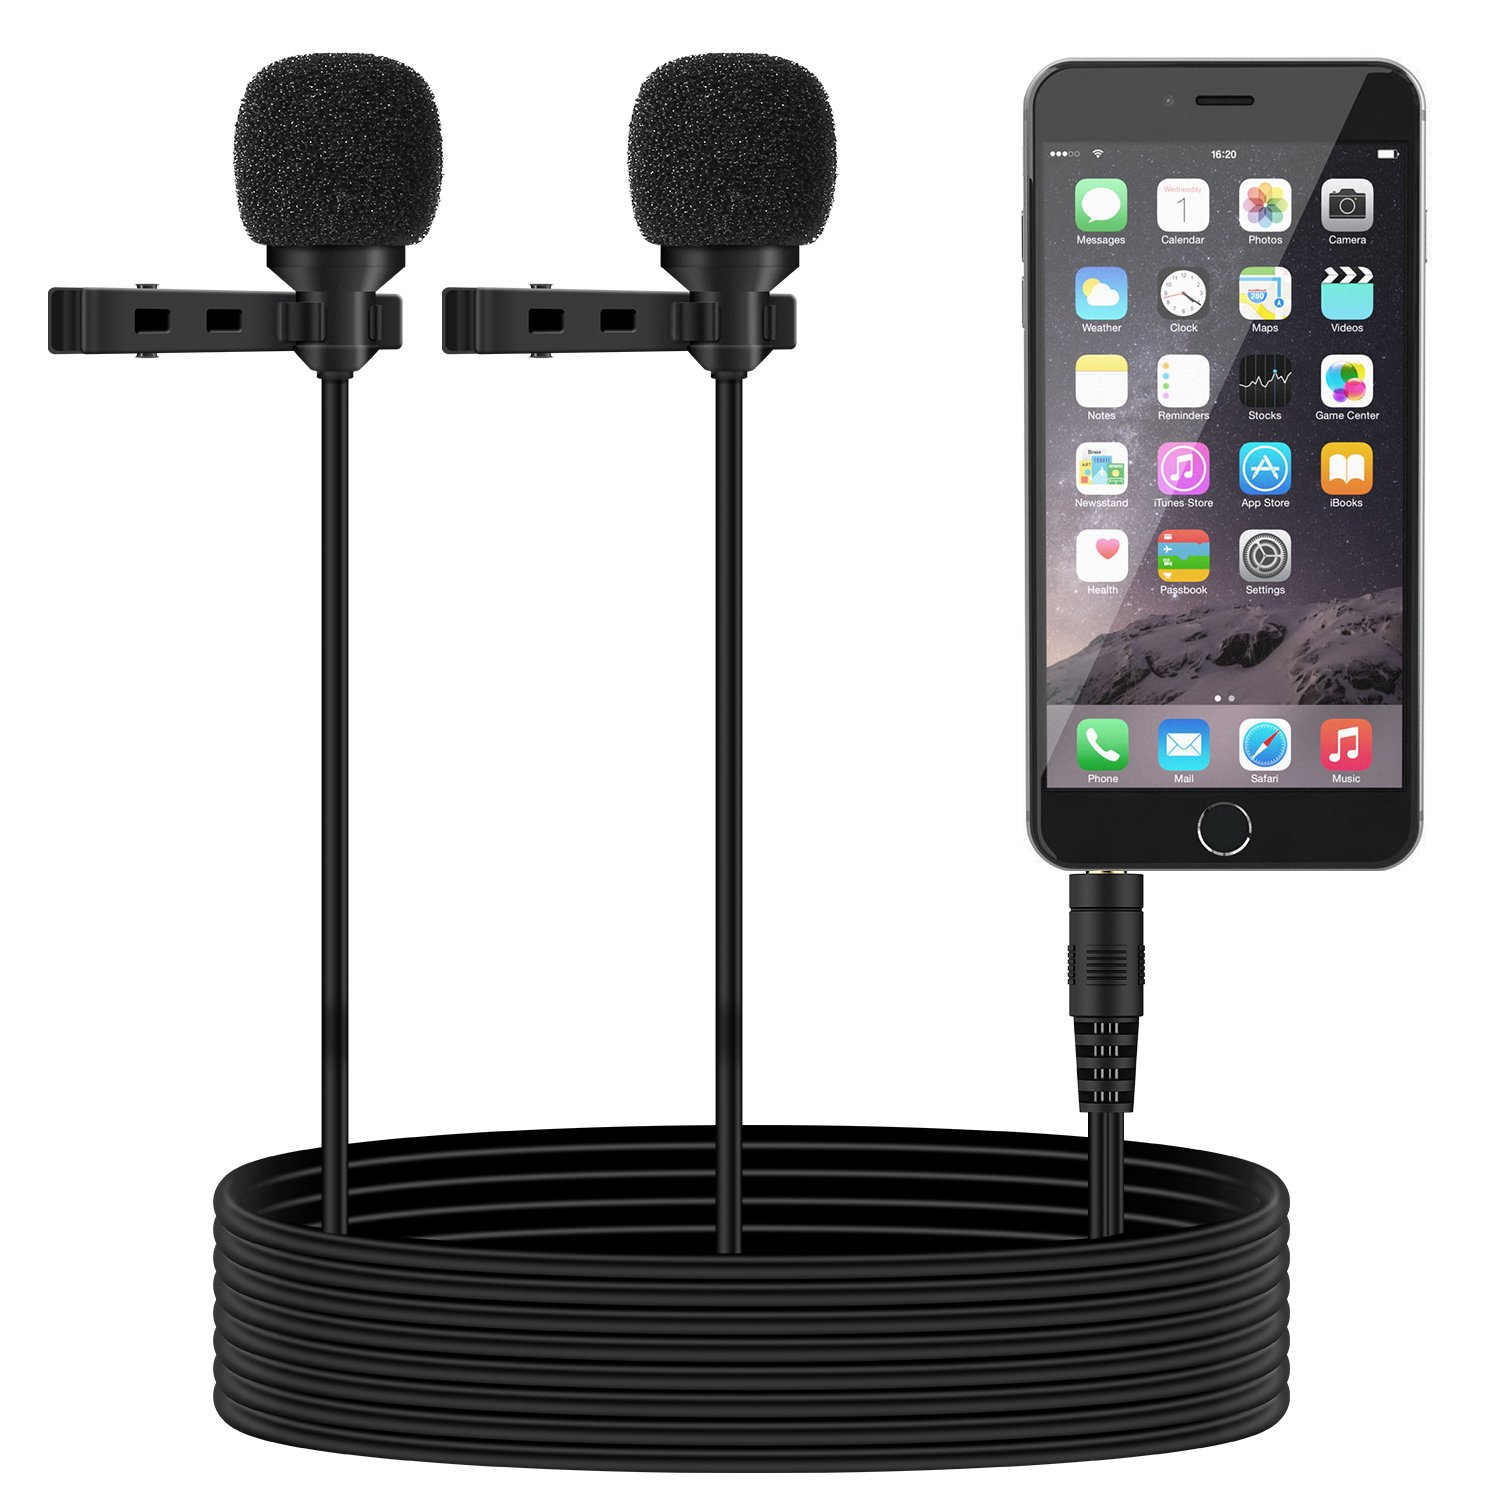 TONOR Dual Lavalier Microphone, Lapel Interview Mini Omnidirectional  Condenser Shirt External Mic for iPhone, Android Smartphones, iPad, 55  inch,